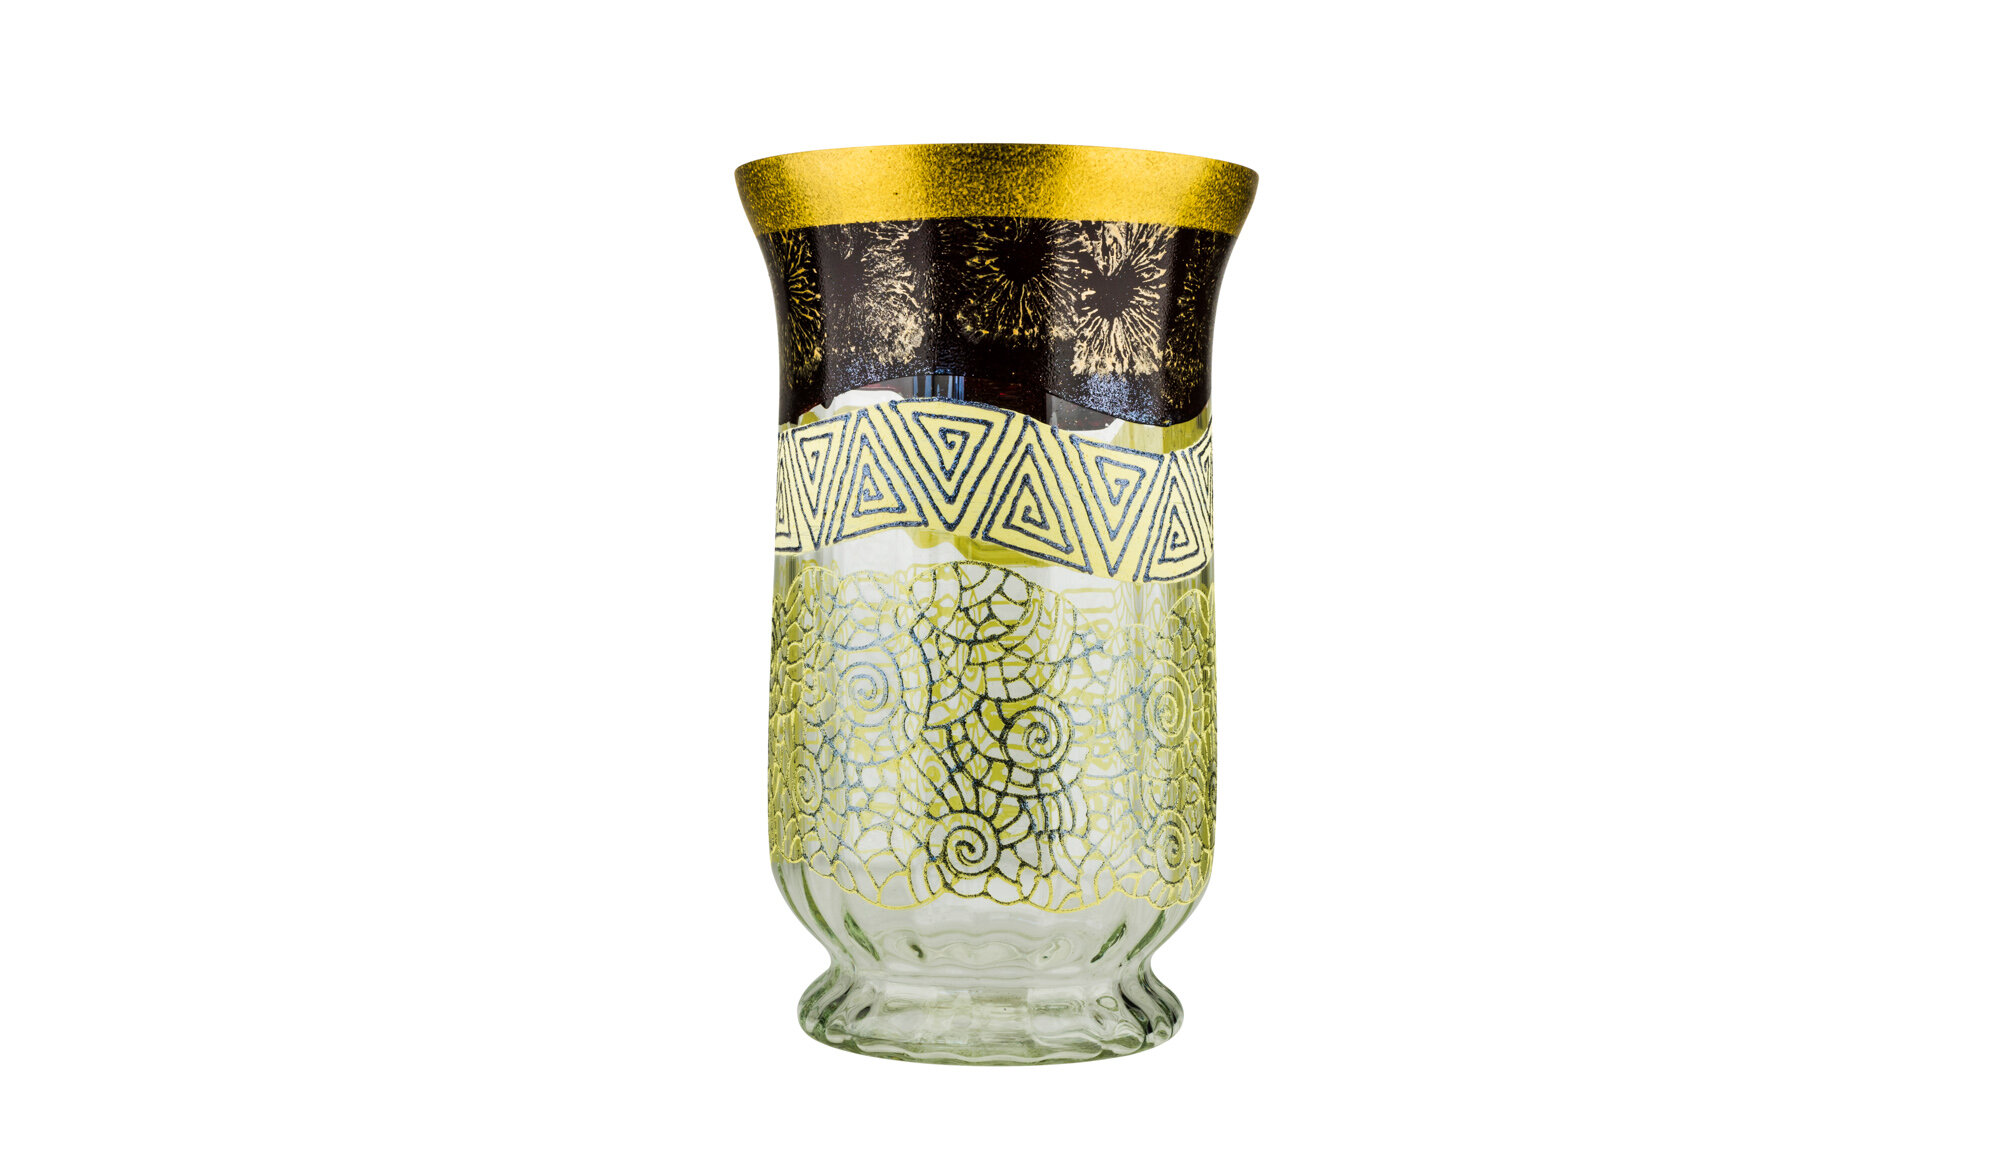 Glam Green Vases Urns Jars Bottles You Ll Love In 2021 Wayfair